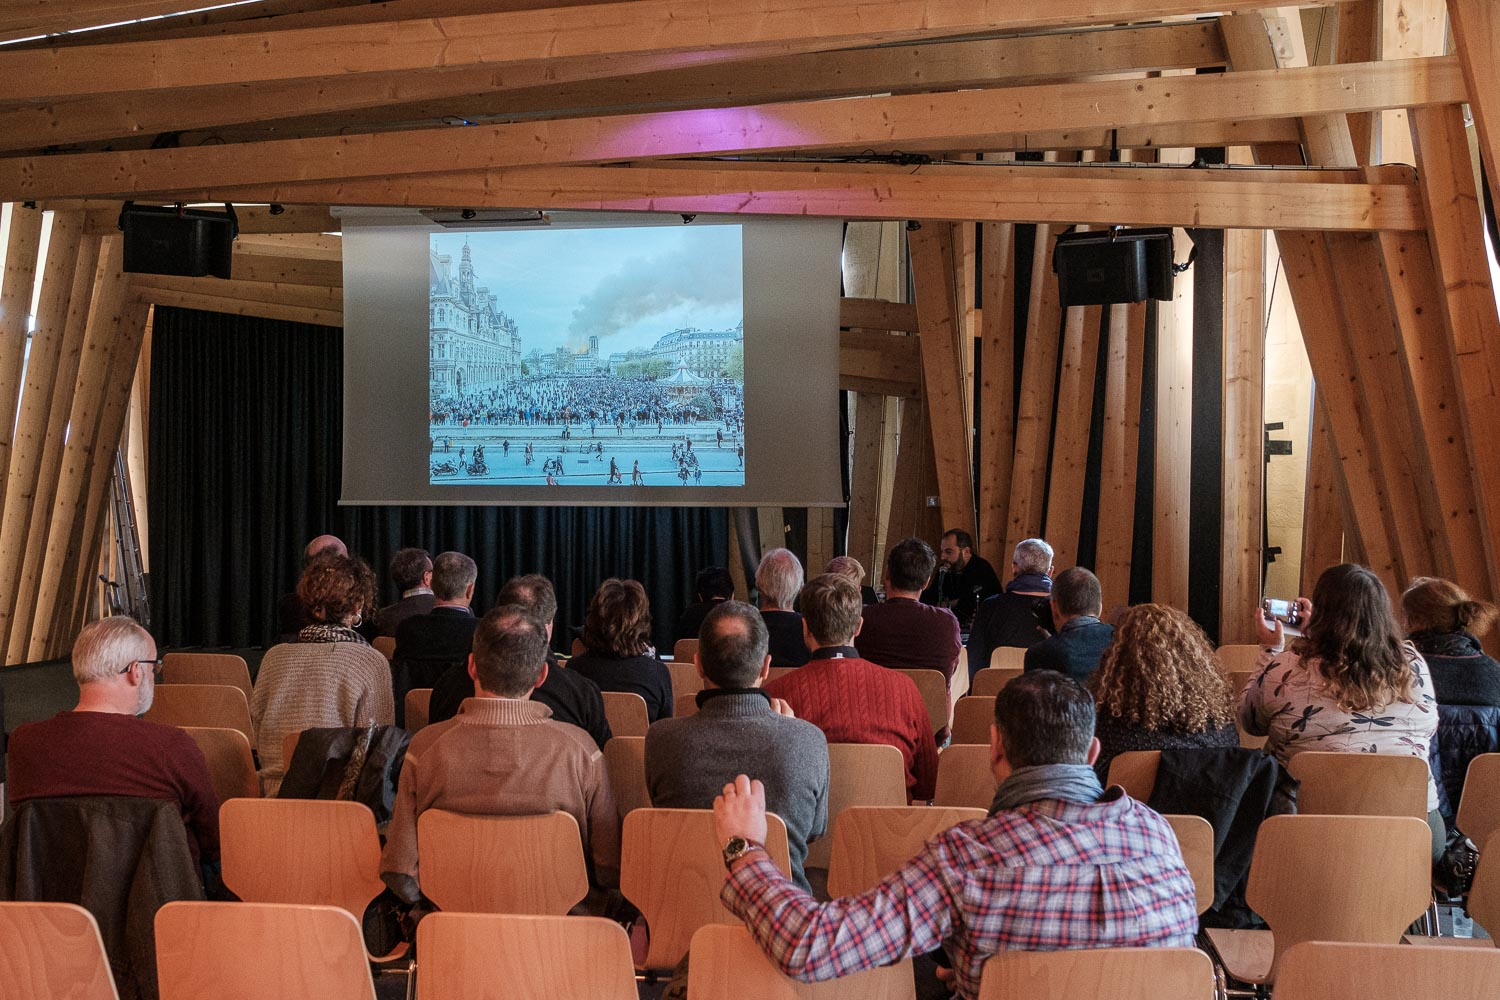 Street Photography Festival 2019 at Rotondes - LSPF 2019 - Conference with Cyril Cornut